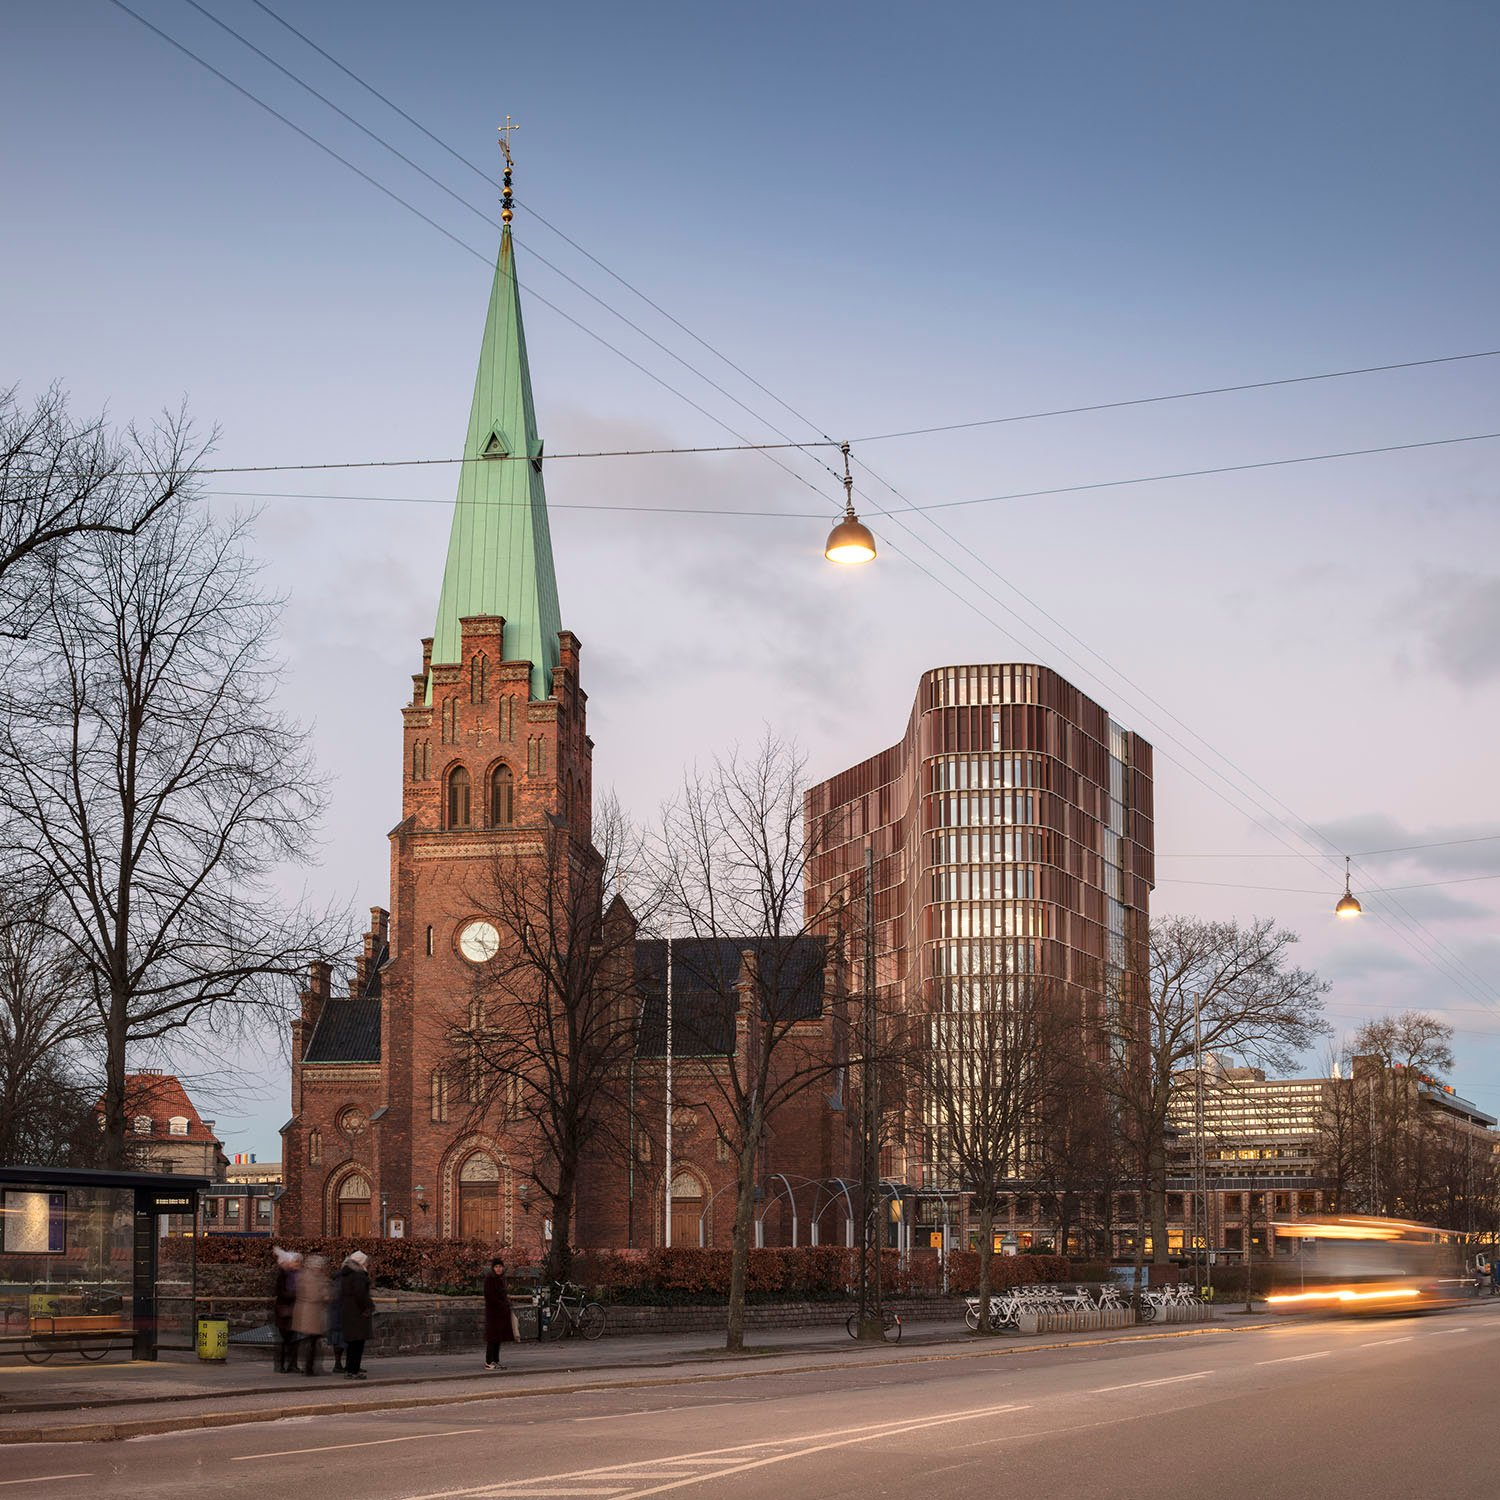 The copper coating of the façade sends a greeting to Copenhagen's many copper church steeples, which, together with the Maersk Tower poke up amidst the homogeneous cityscape. Adam Mørk